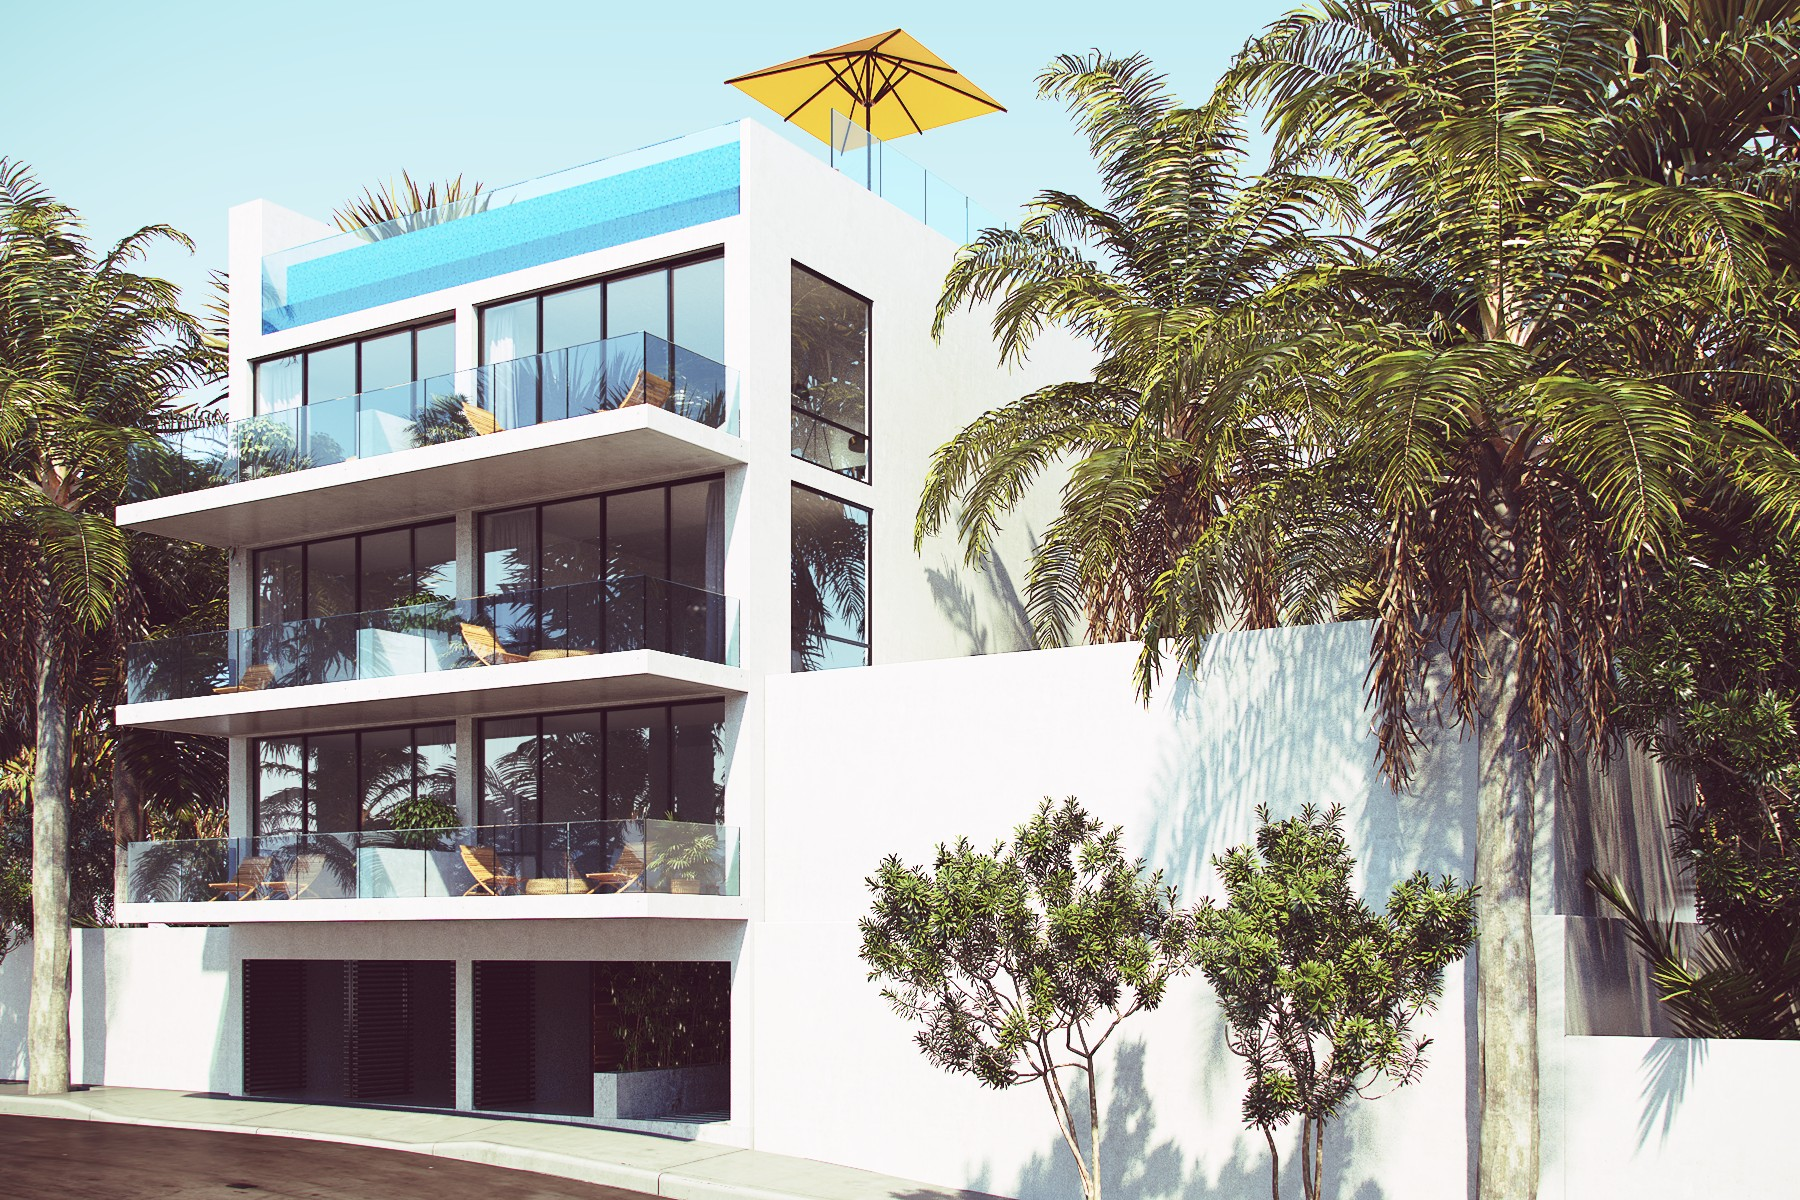 Kat Mülkiyeti için Satış at LIFESTYLE CONDOMINIUM 88 Street, between 5th Ave. and 10th Ave Lot 08 Playa Del Carmen, Quintana Roo, 77710 Meksika